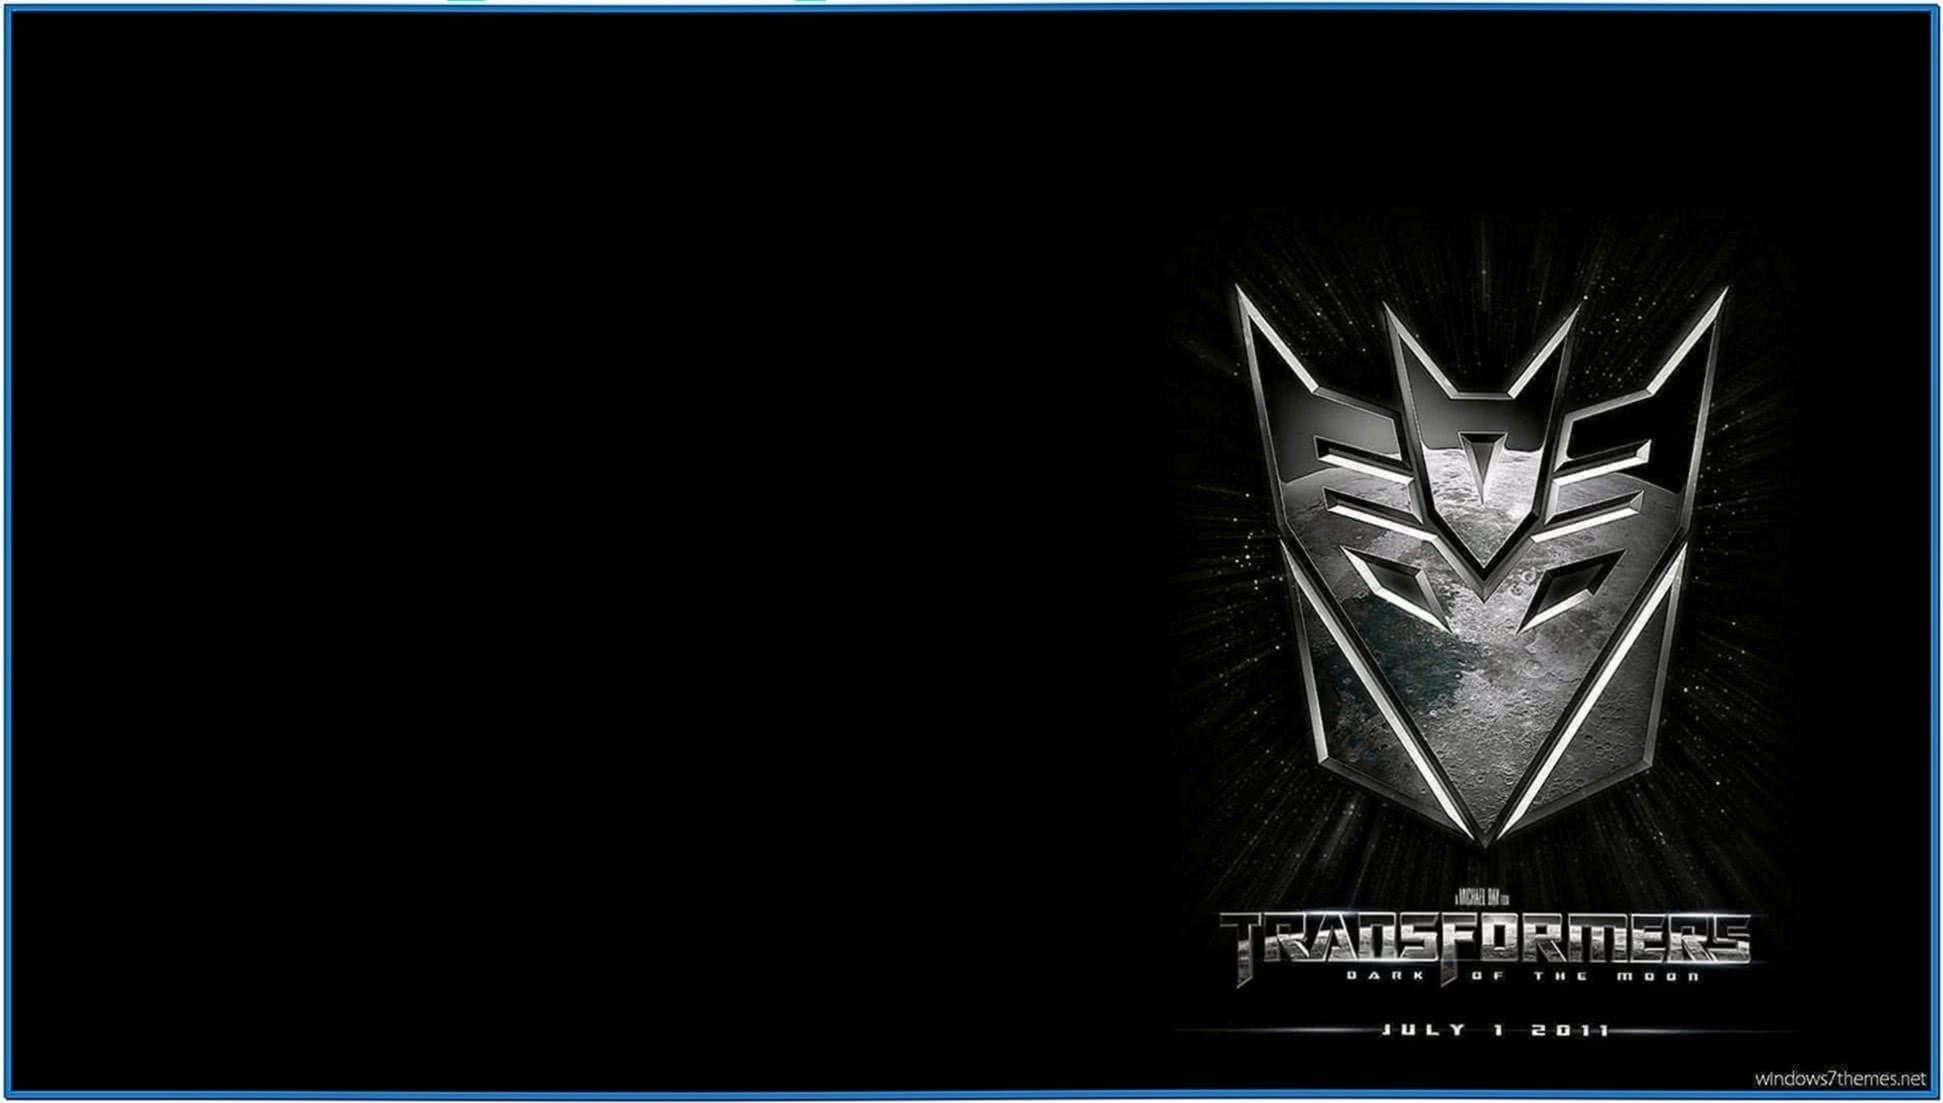 Transformers 3 Screensaver Windows 7